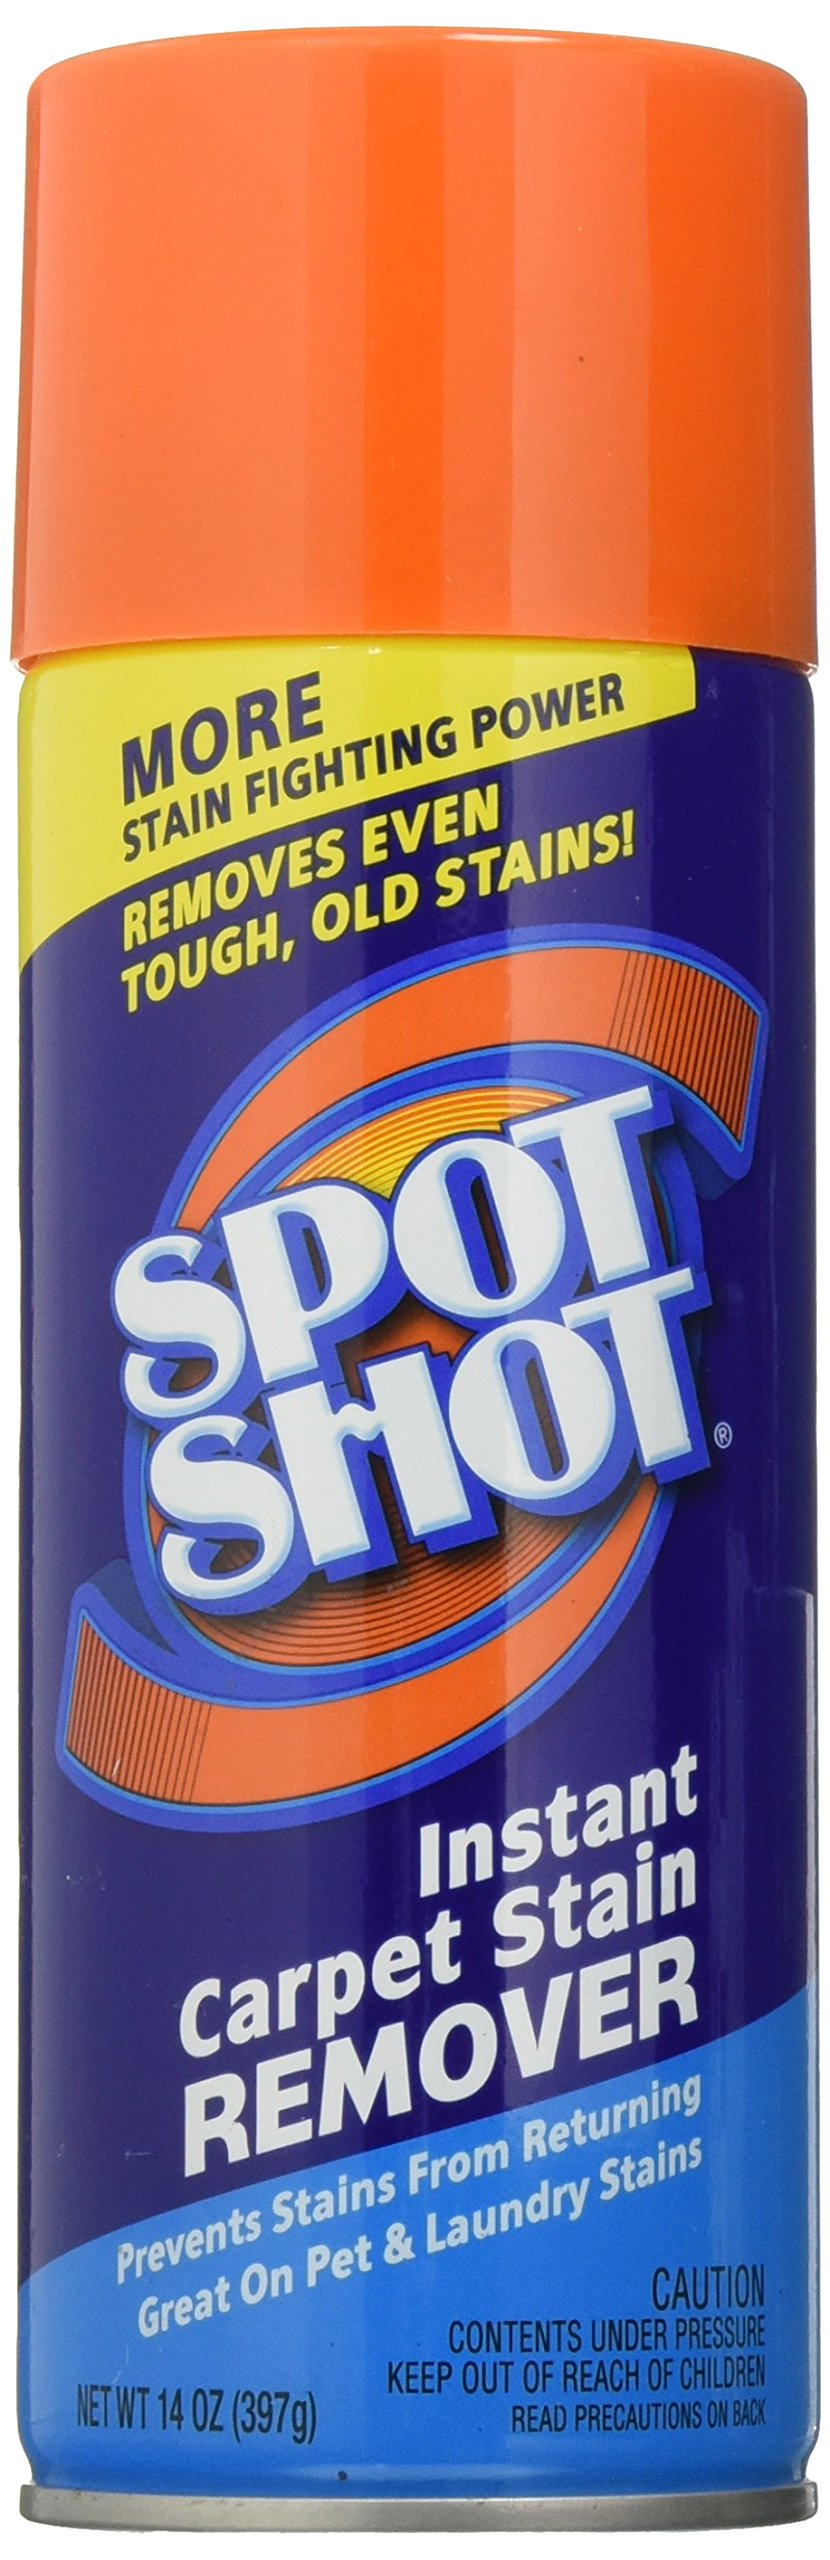 Spot Shot Instant Carpet Stain Remover by Spot Shot